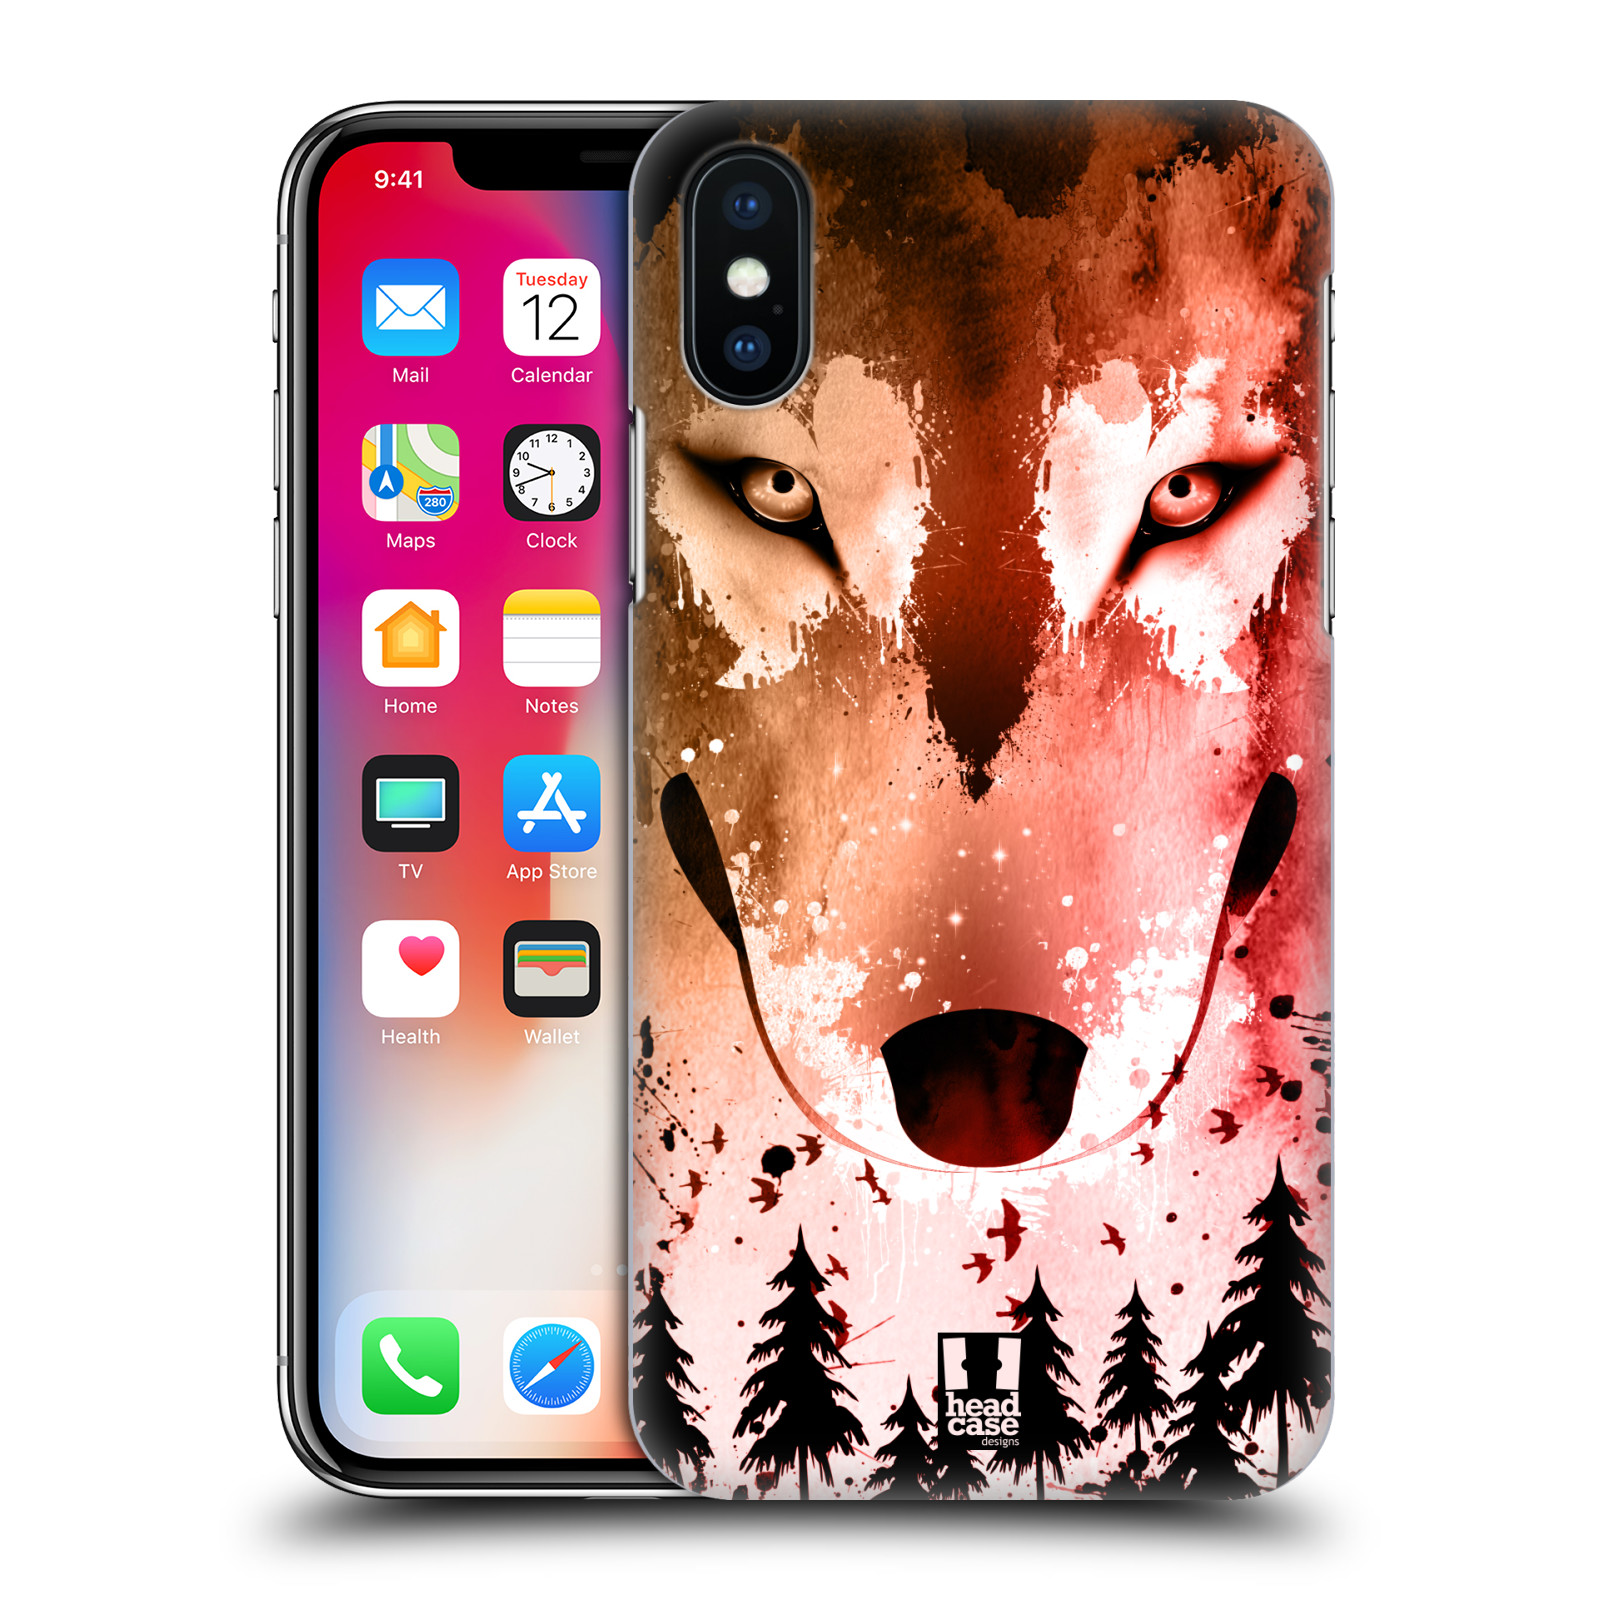 HEAD-CASE-DESIGNS-SAFARI-ASTRATTO-COVER-RETRO-RIGIDA-PER-APPLE-iPHONE-TELEFONI